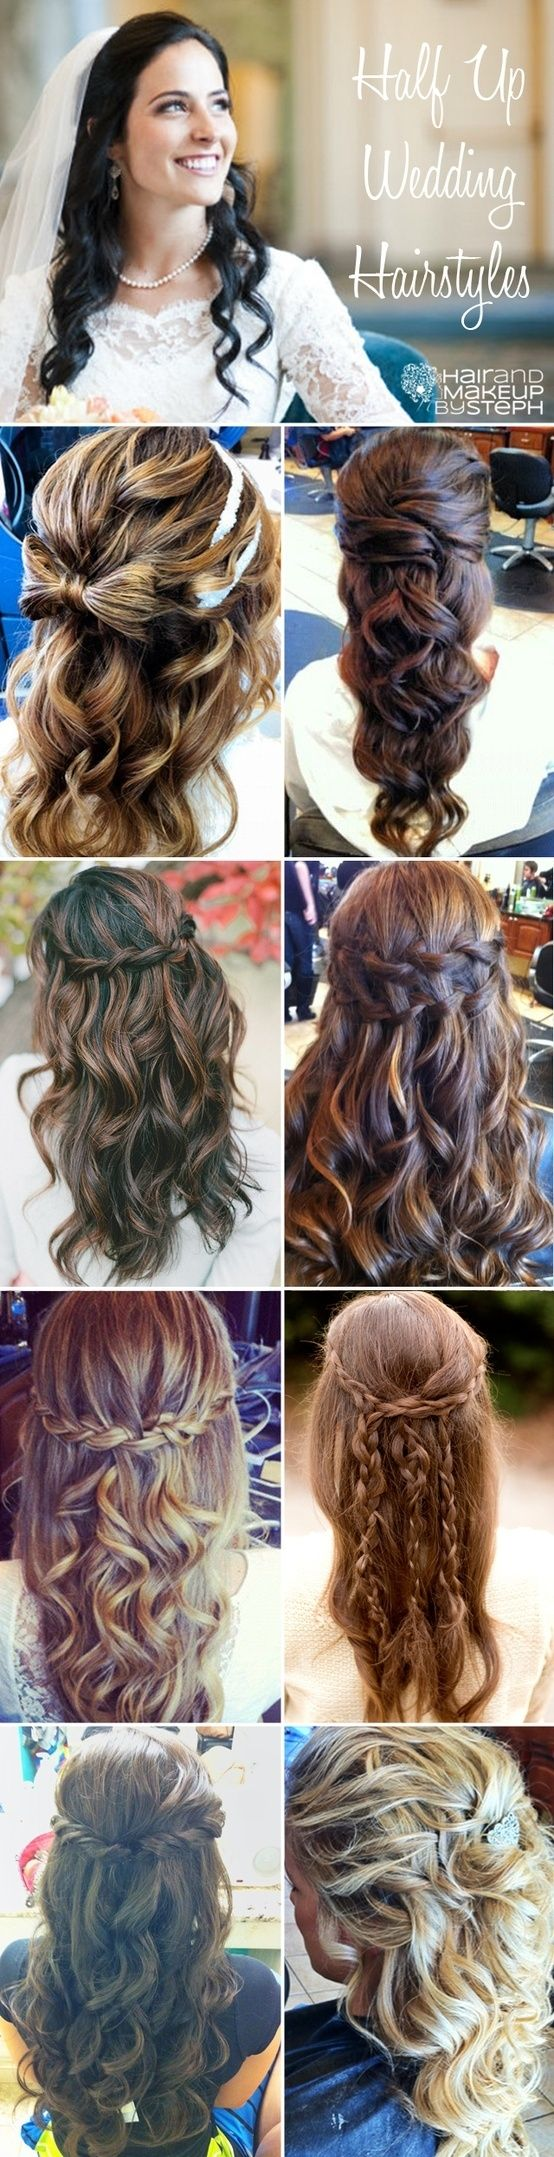 best half dos images on pinterest hairstyle ideas bridal